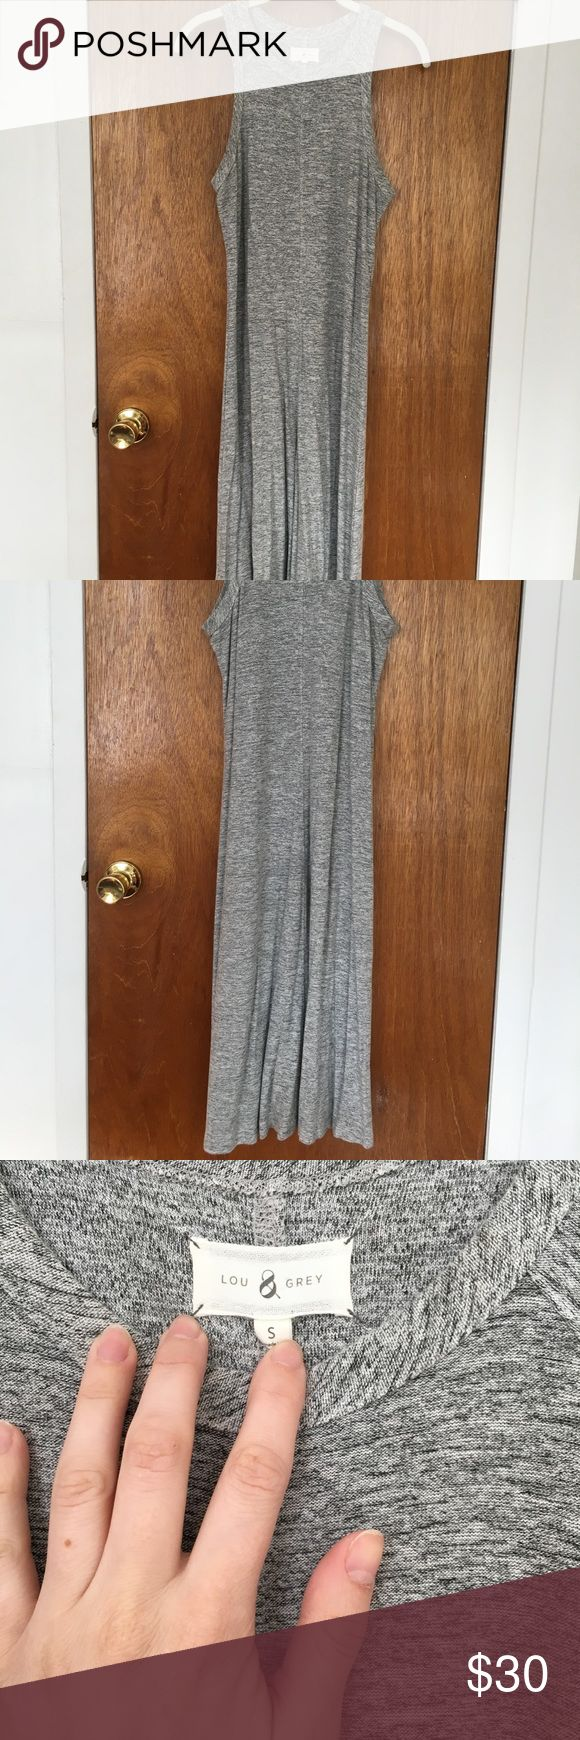 Loft Lou & Grey midi dress Super comfy sleeveless dress in marled gray from Loft. Gently used, a former favorite of mine, but grew tired of it. Lou & Grey Dresses Midi